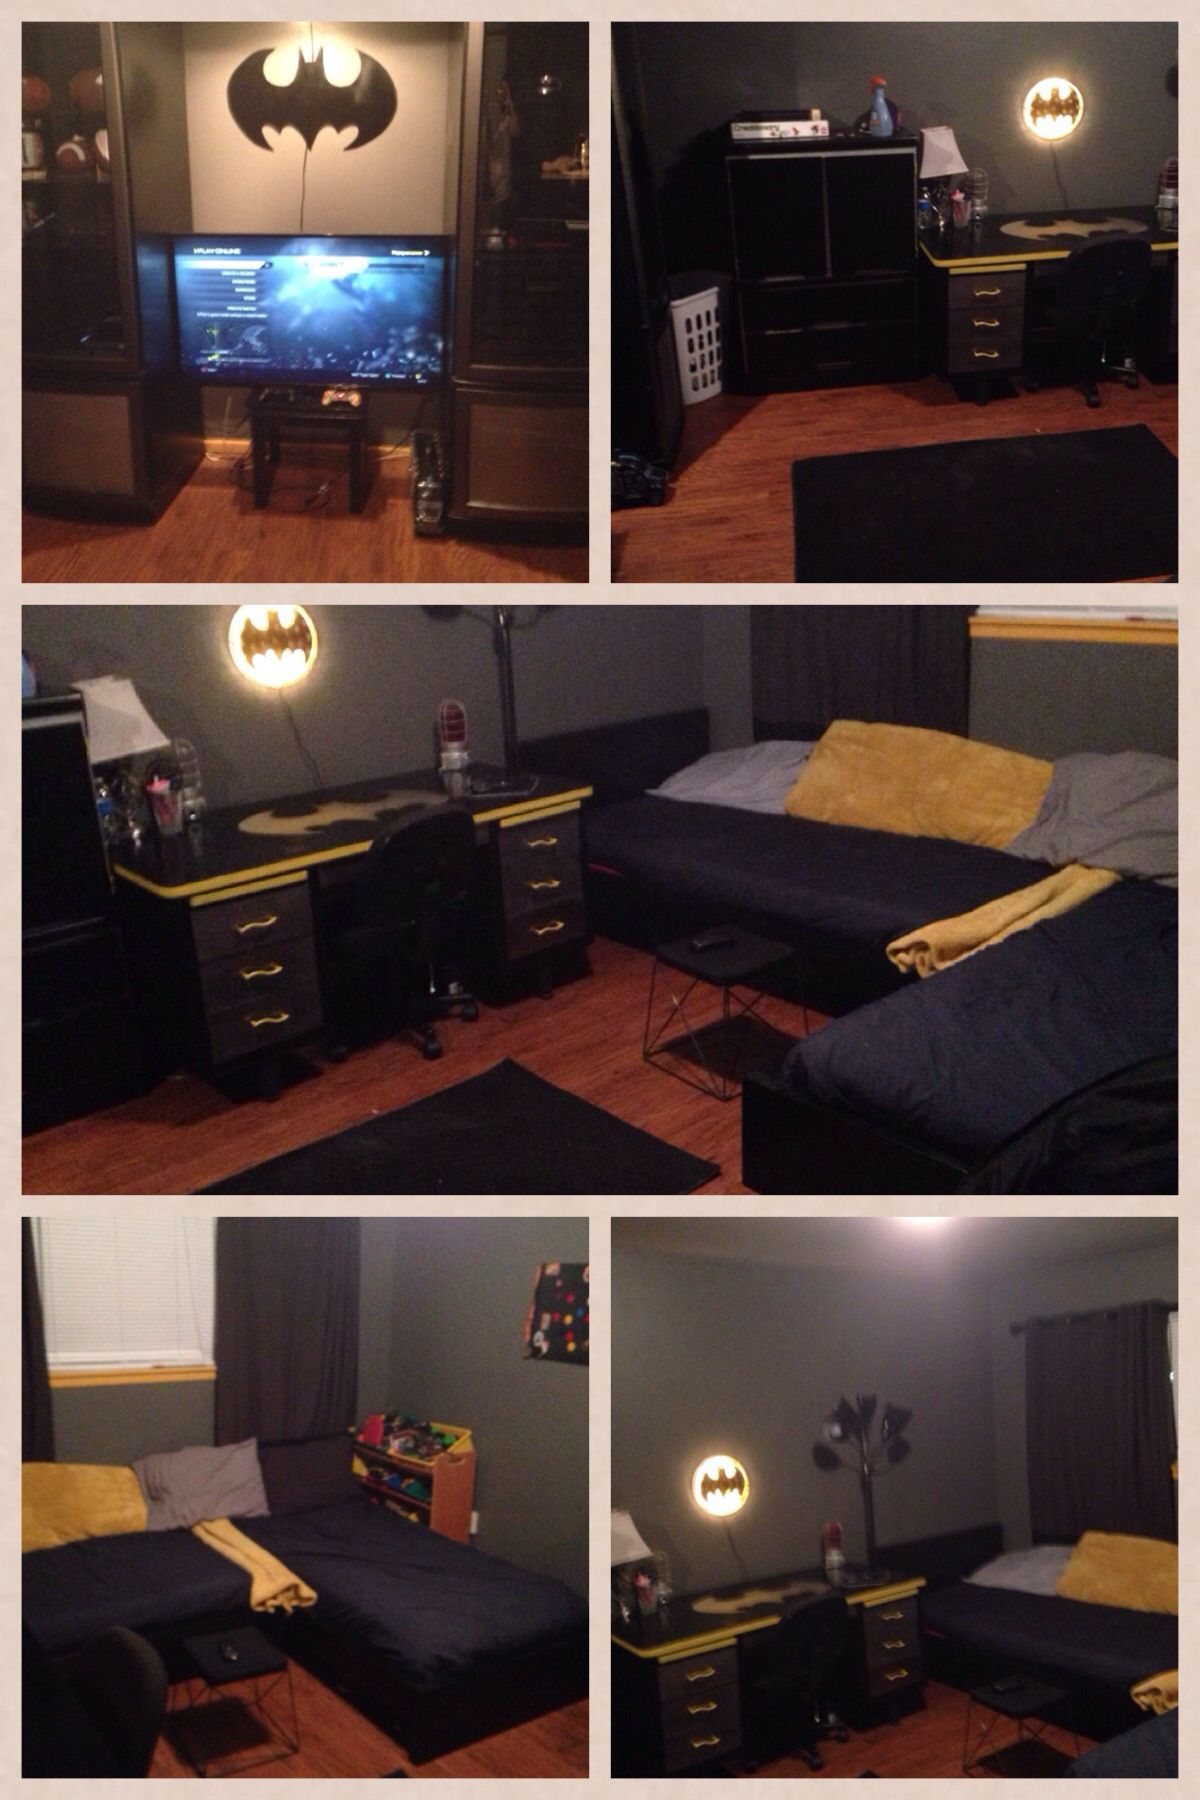 Living Room Theaters Fau Buy Tickets Online: Second Living Area Converted Into Boys Batcave Bedroom